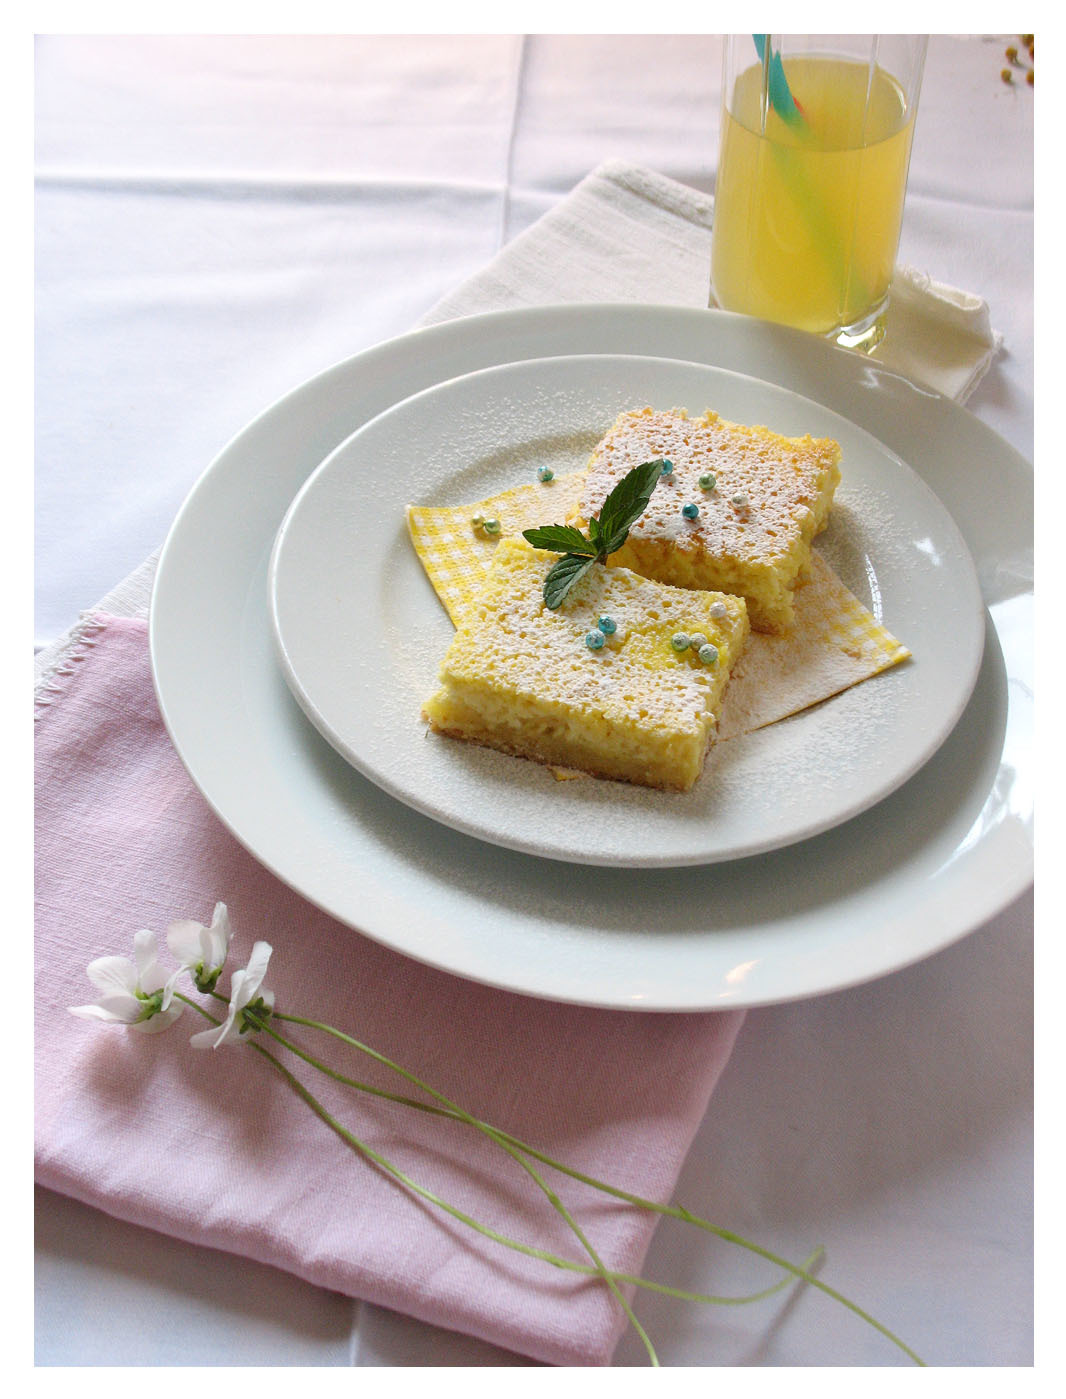 Pita od svježeg sira s kamilicom i sokom od bazge/ Cottage cheese pie with chamomile and elderflower syrup